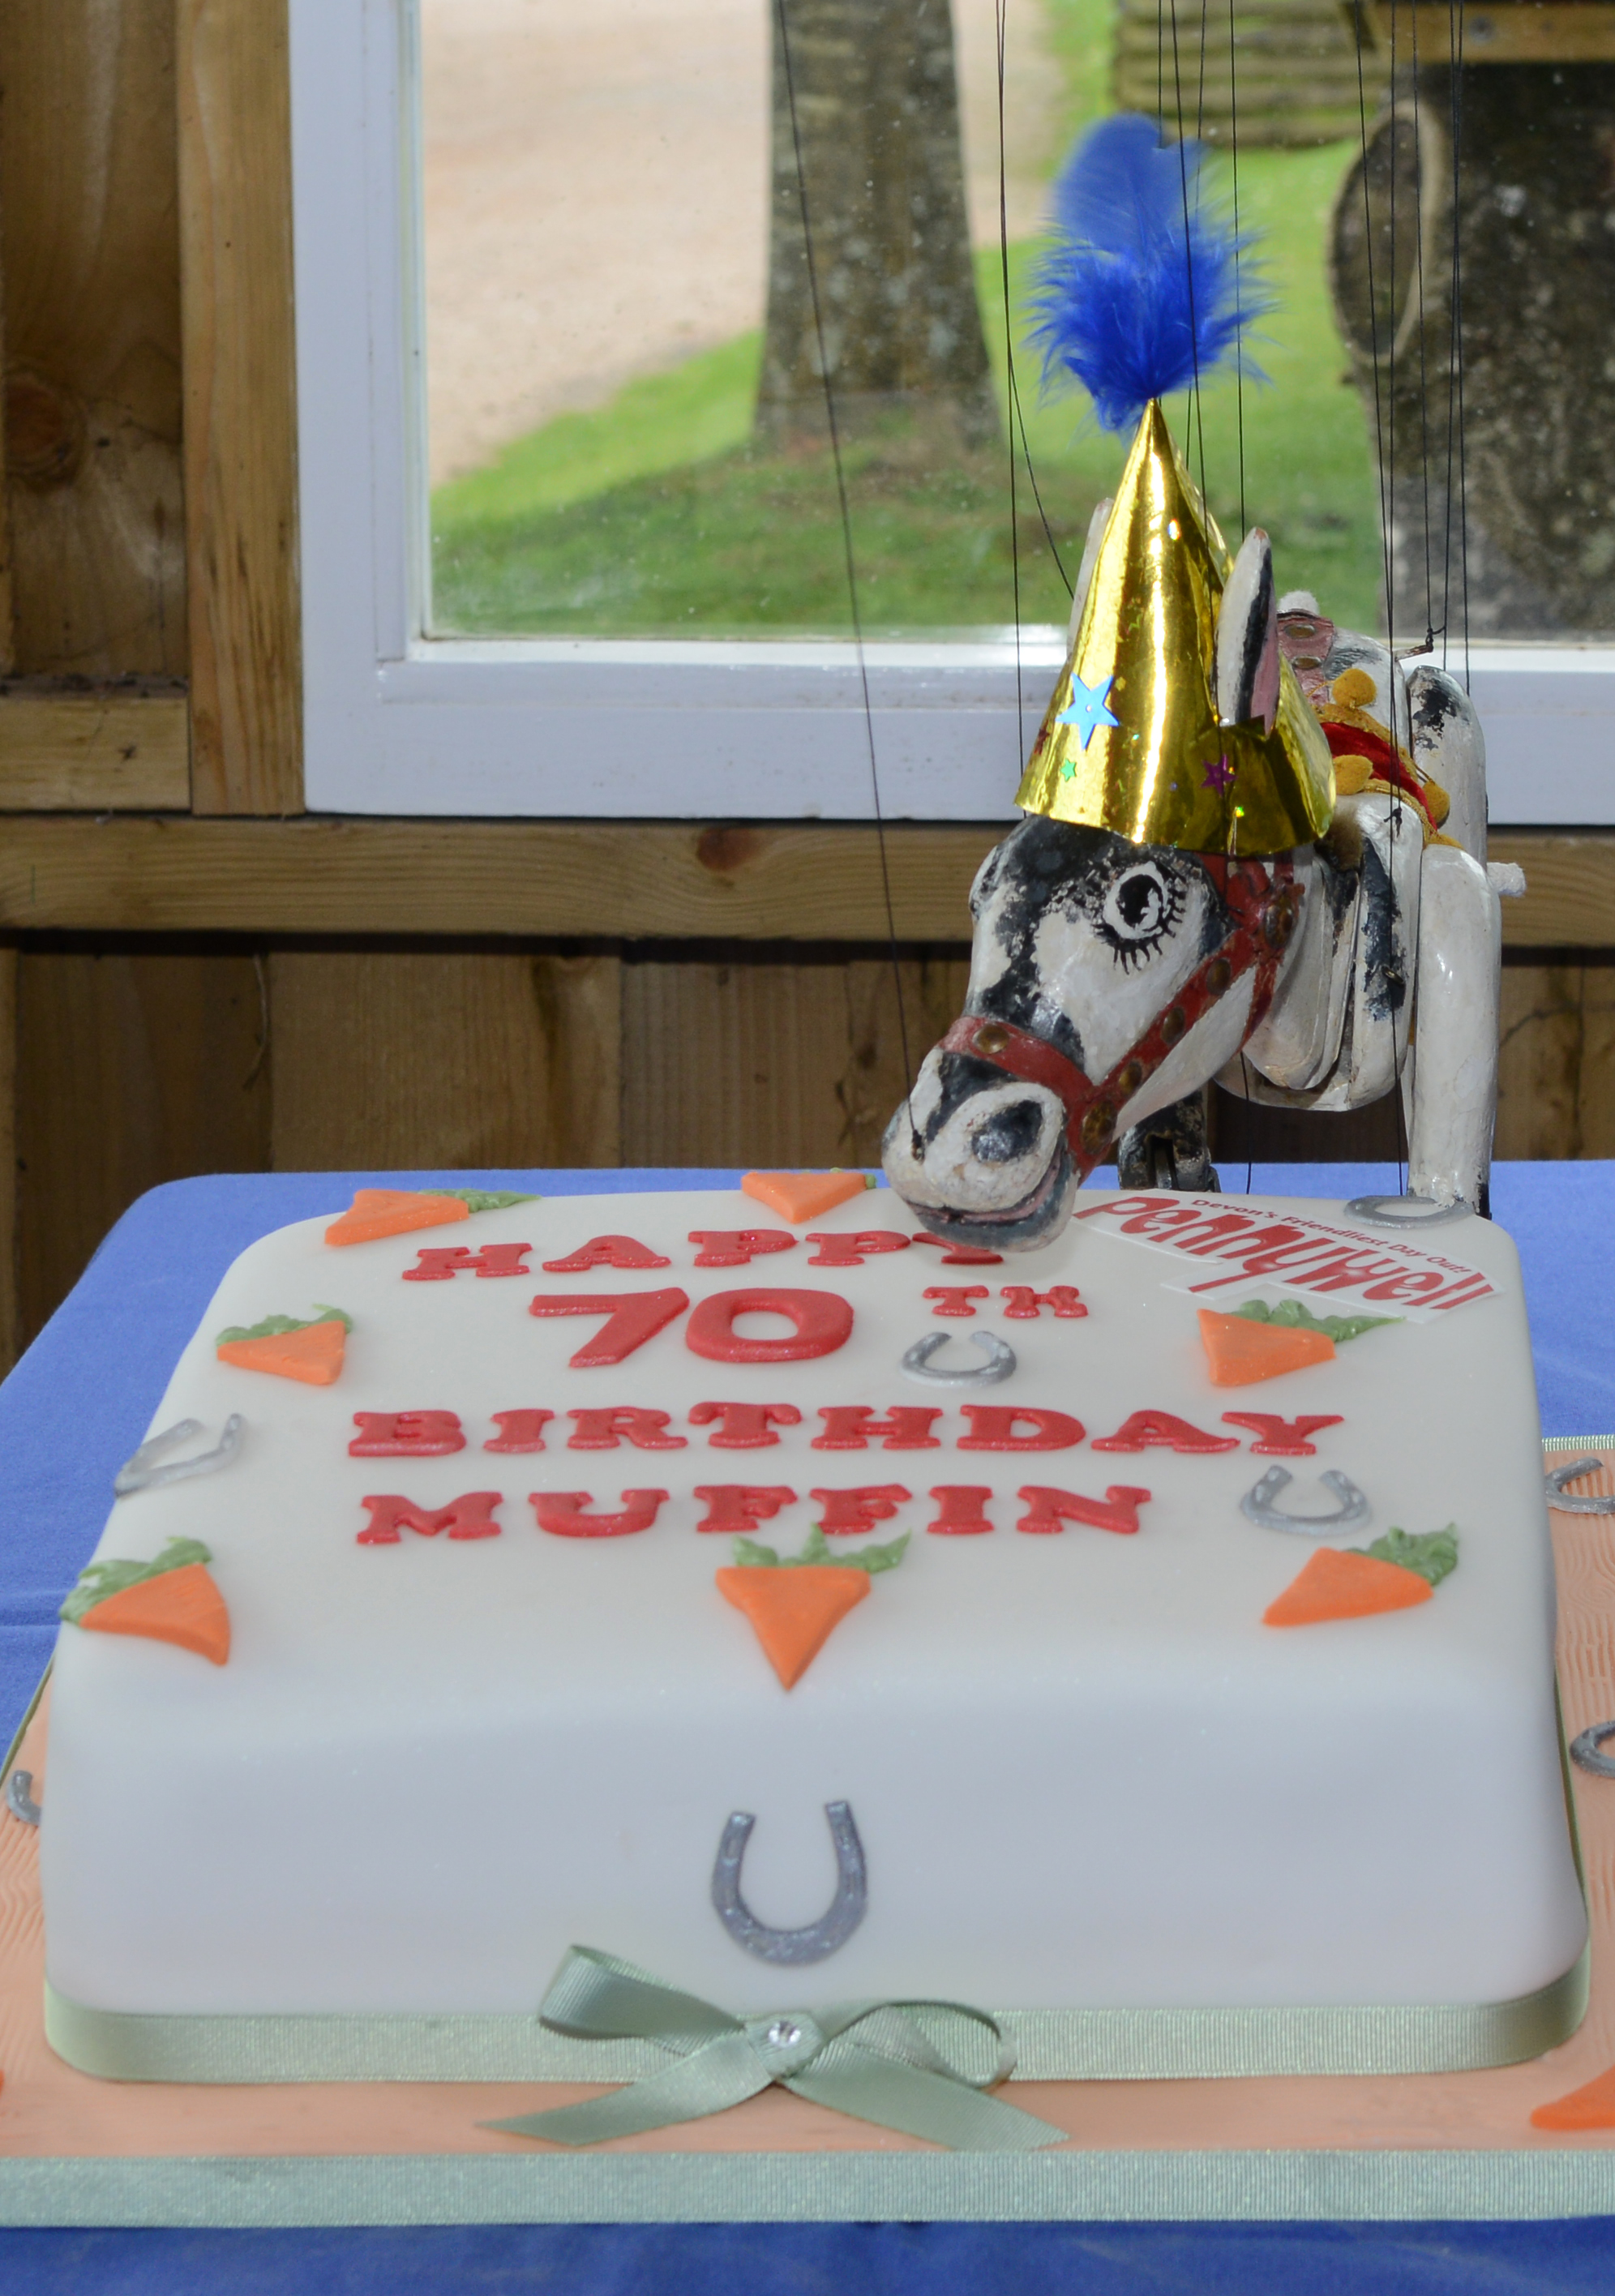 Muffin with his 70th Birthday cake